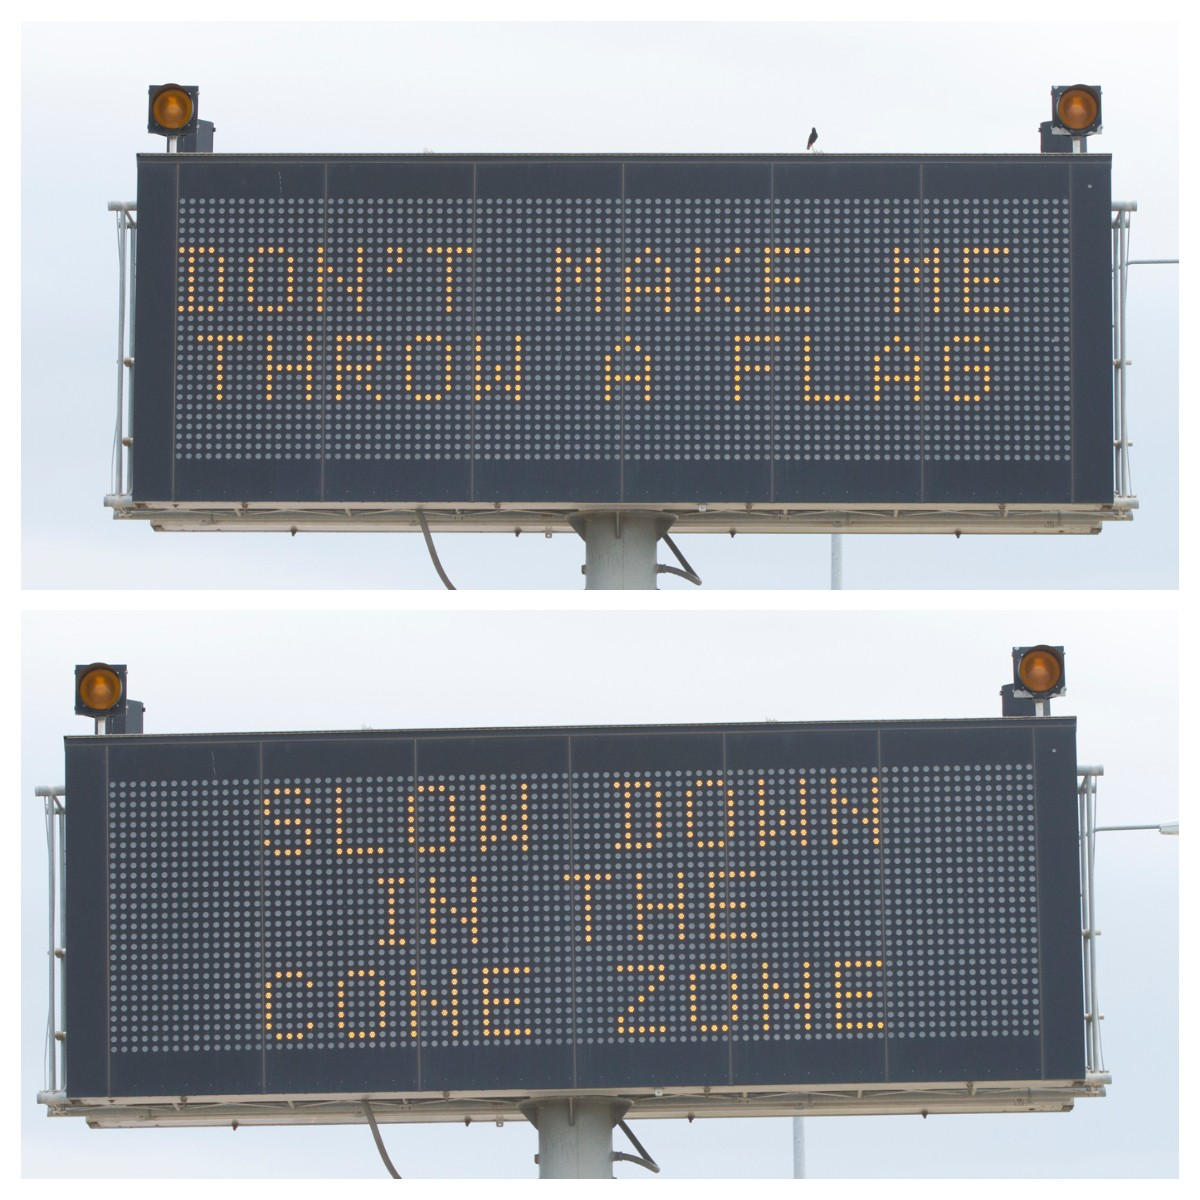 /content/dam/ok/en/odot/images/message-signs/05.11.16.jpg